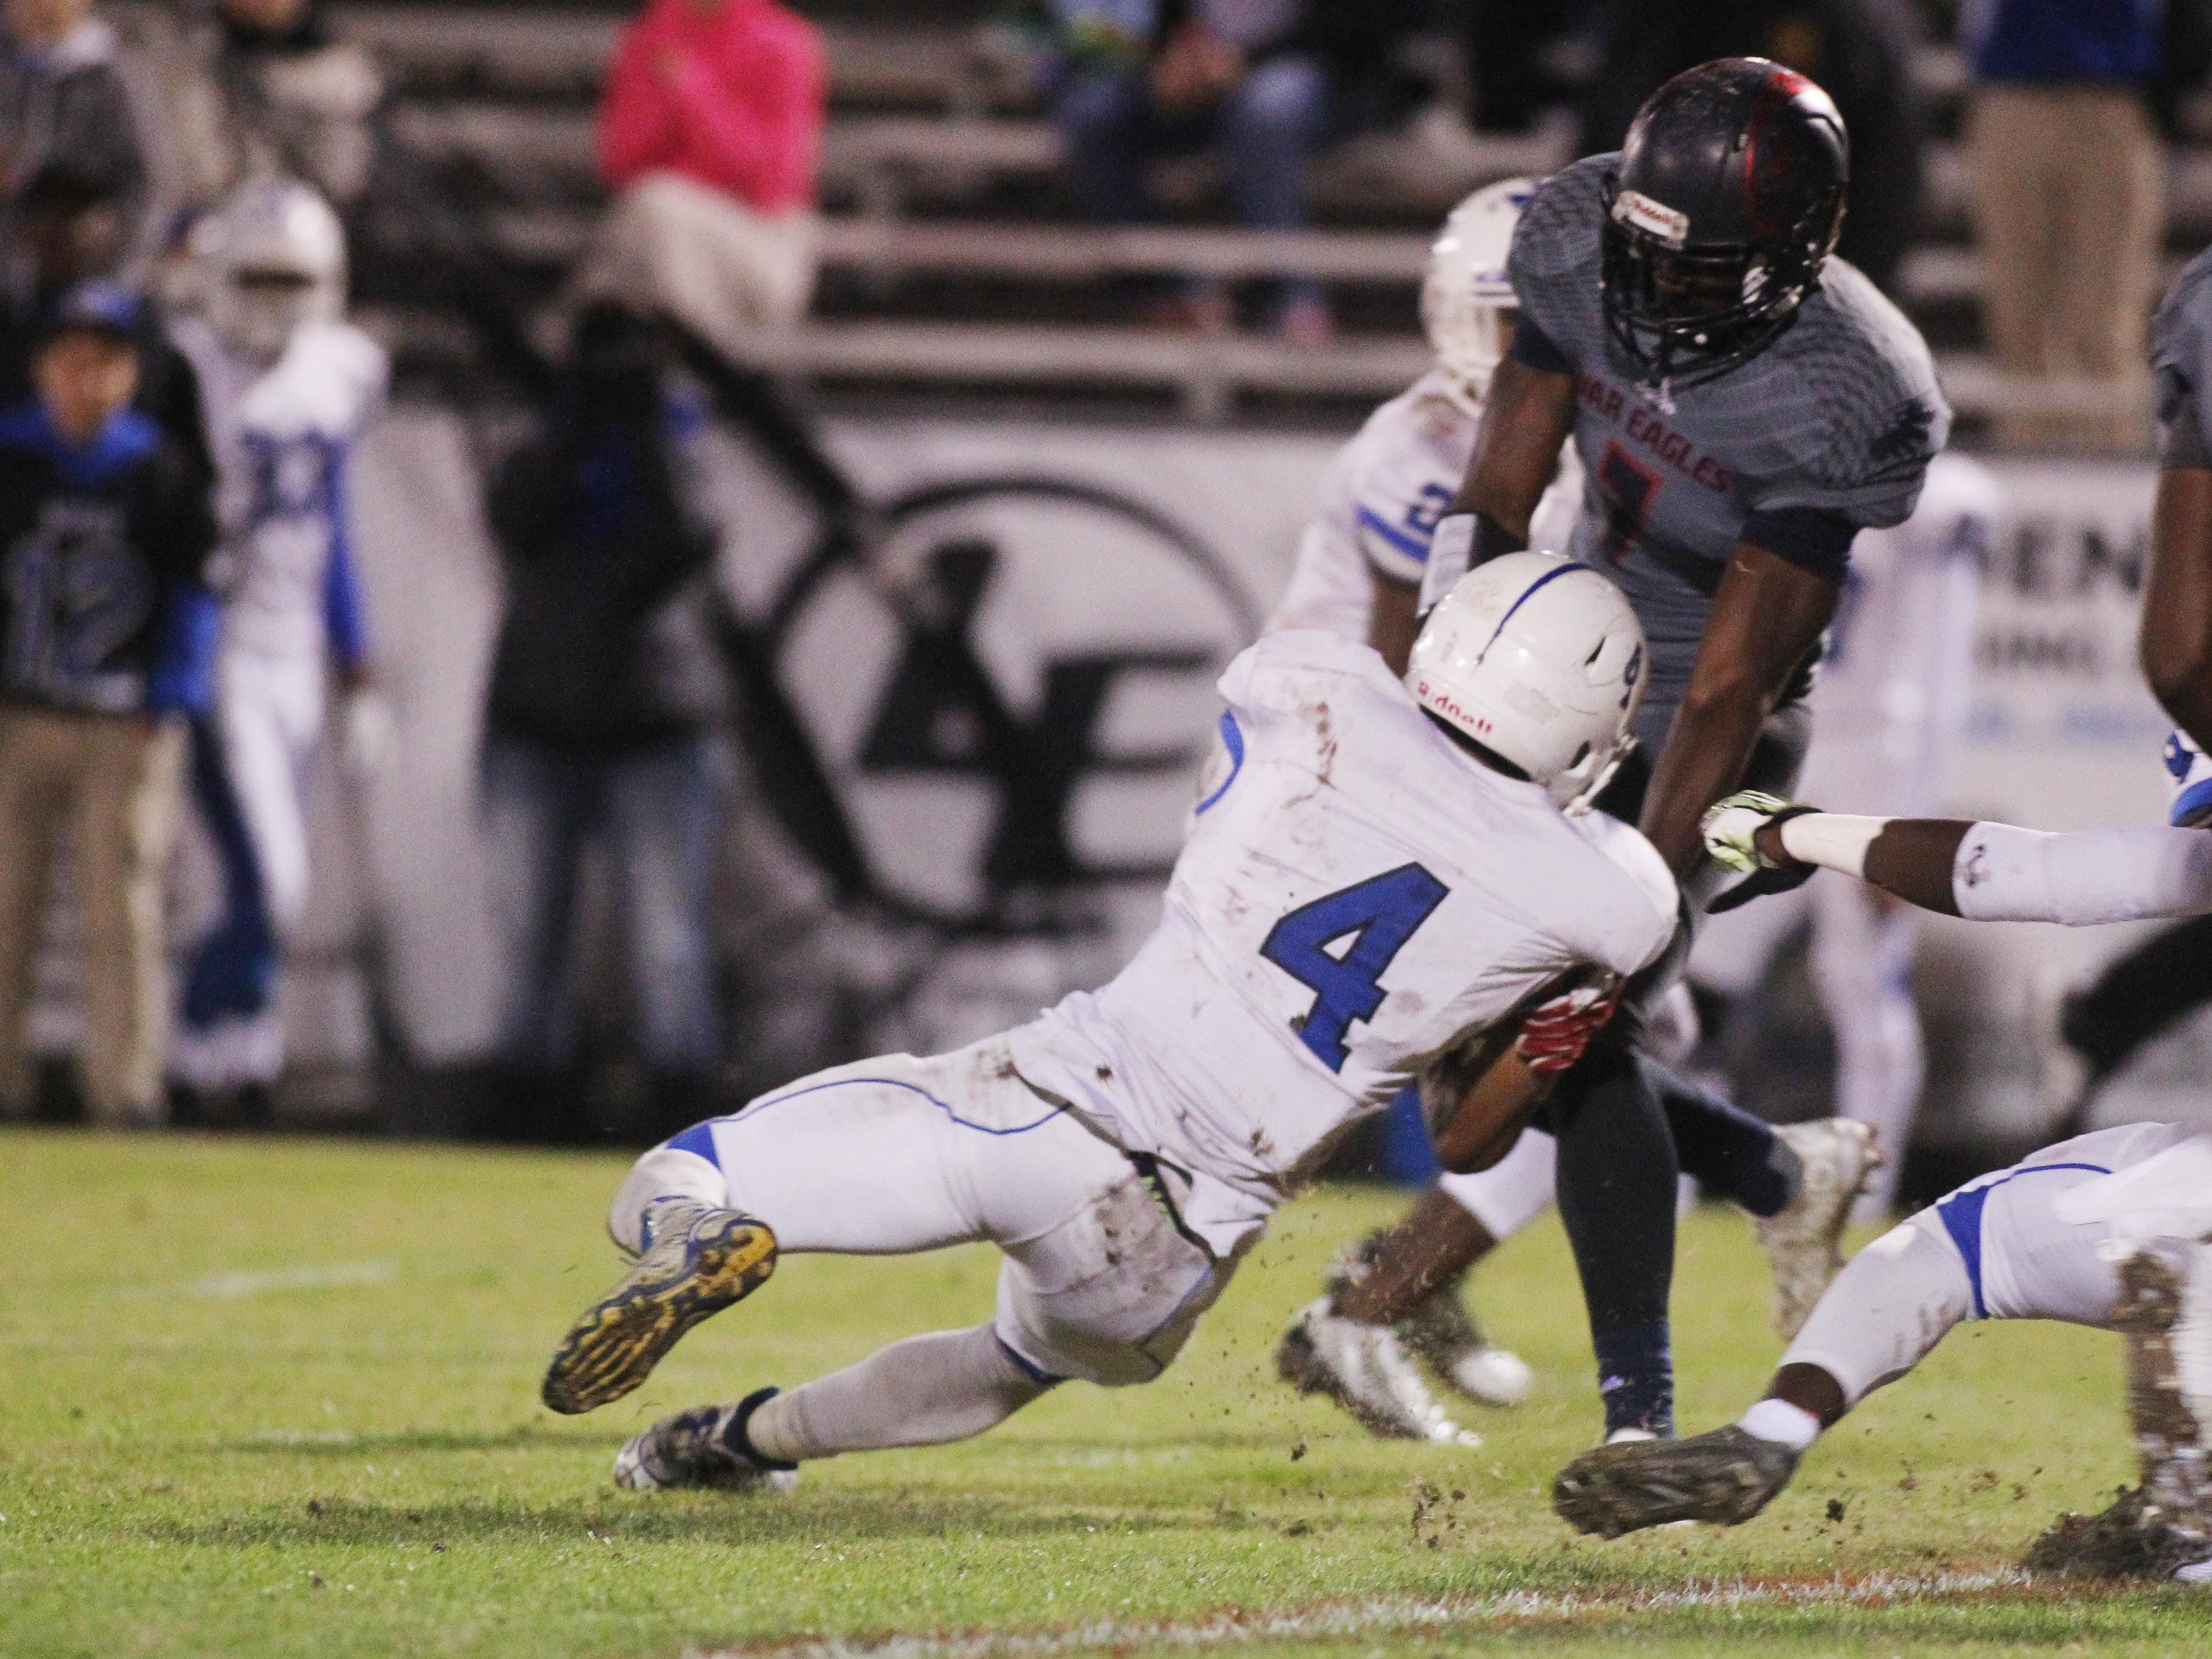 Wakulla safety Keith Gavin goes for a strip against Clay running back Bilal Ally, who was limited by the War Eagles' defense to 152 yards on 35 carries.